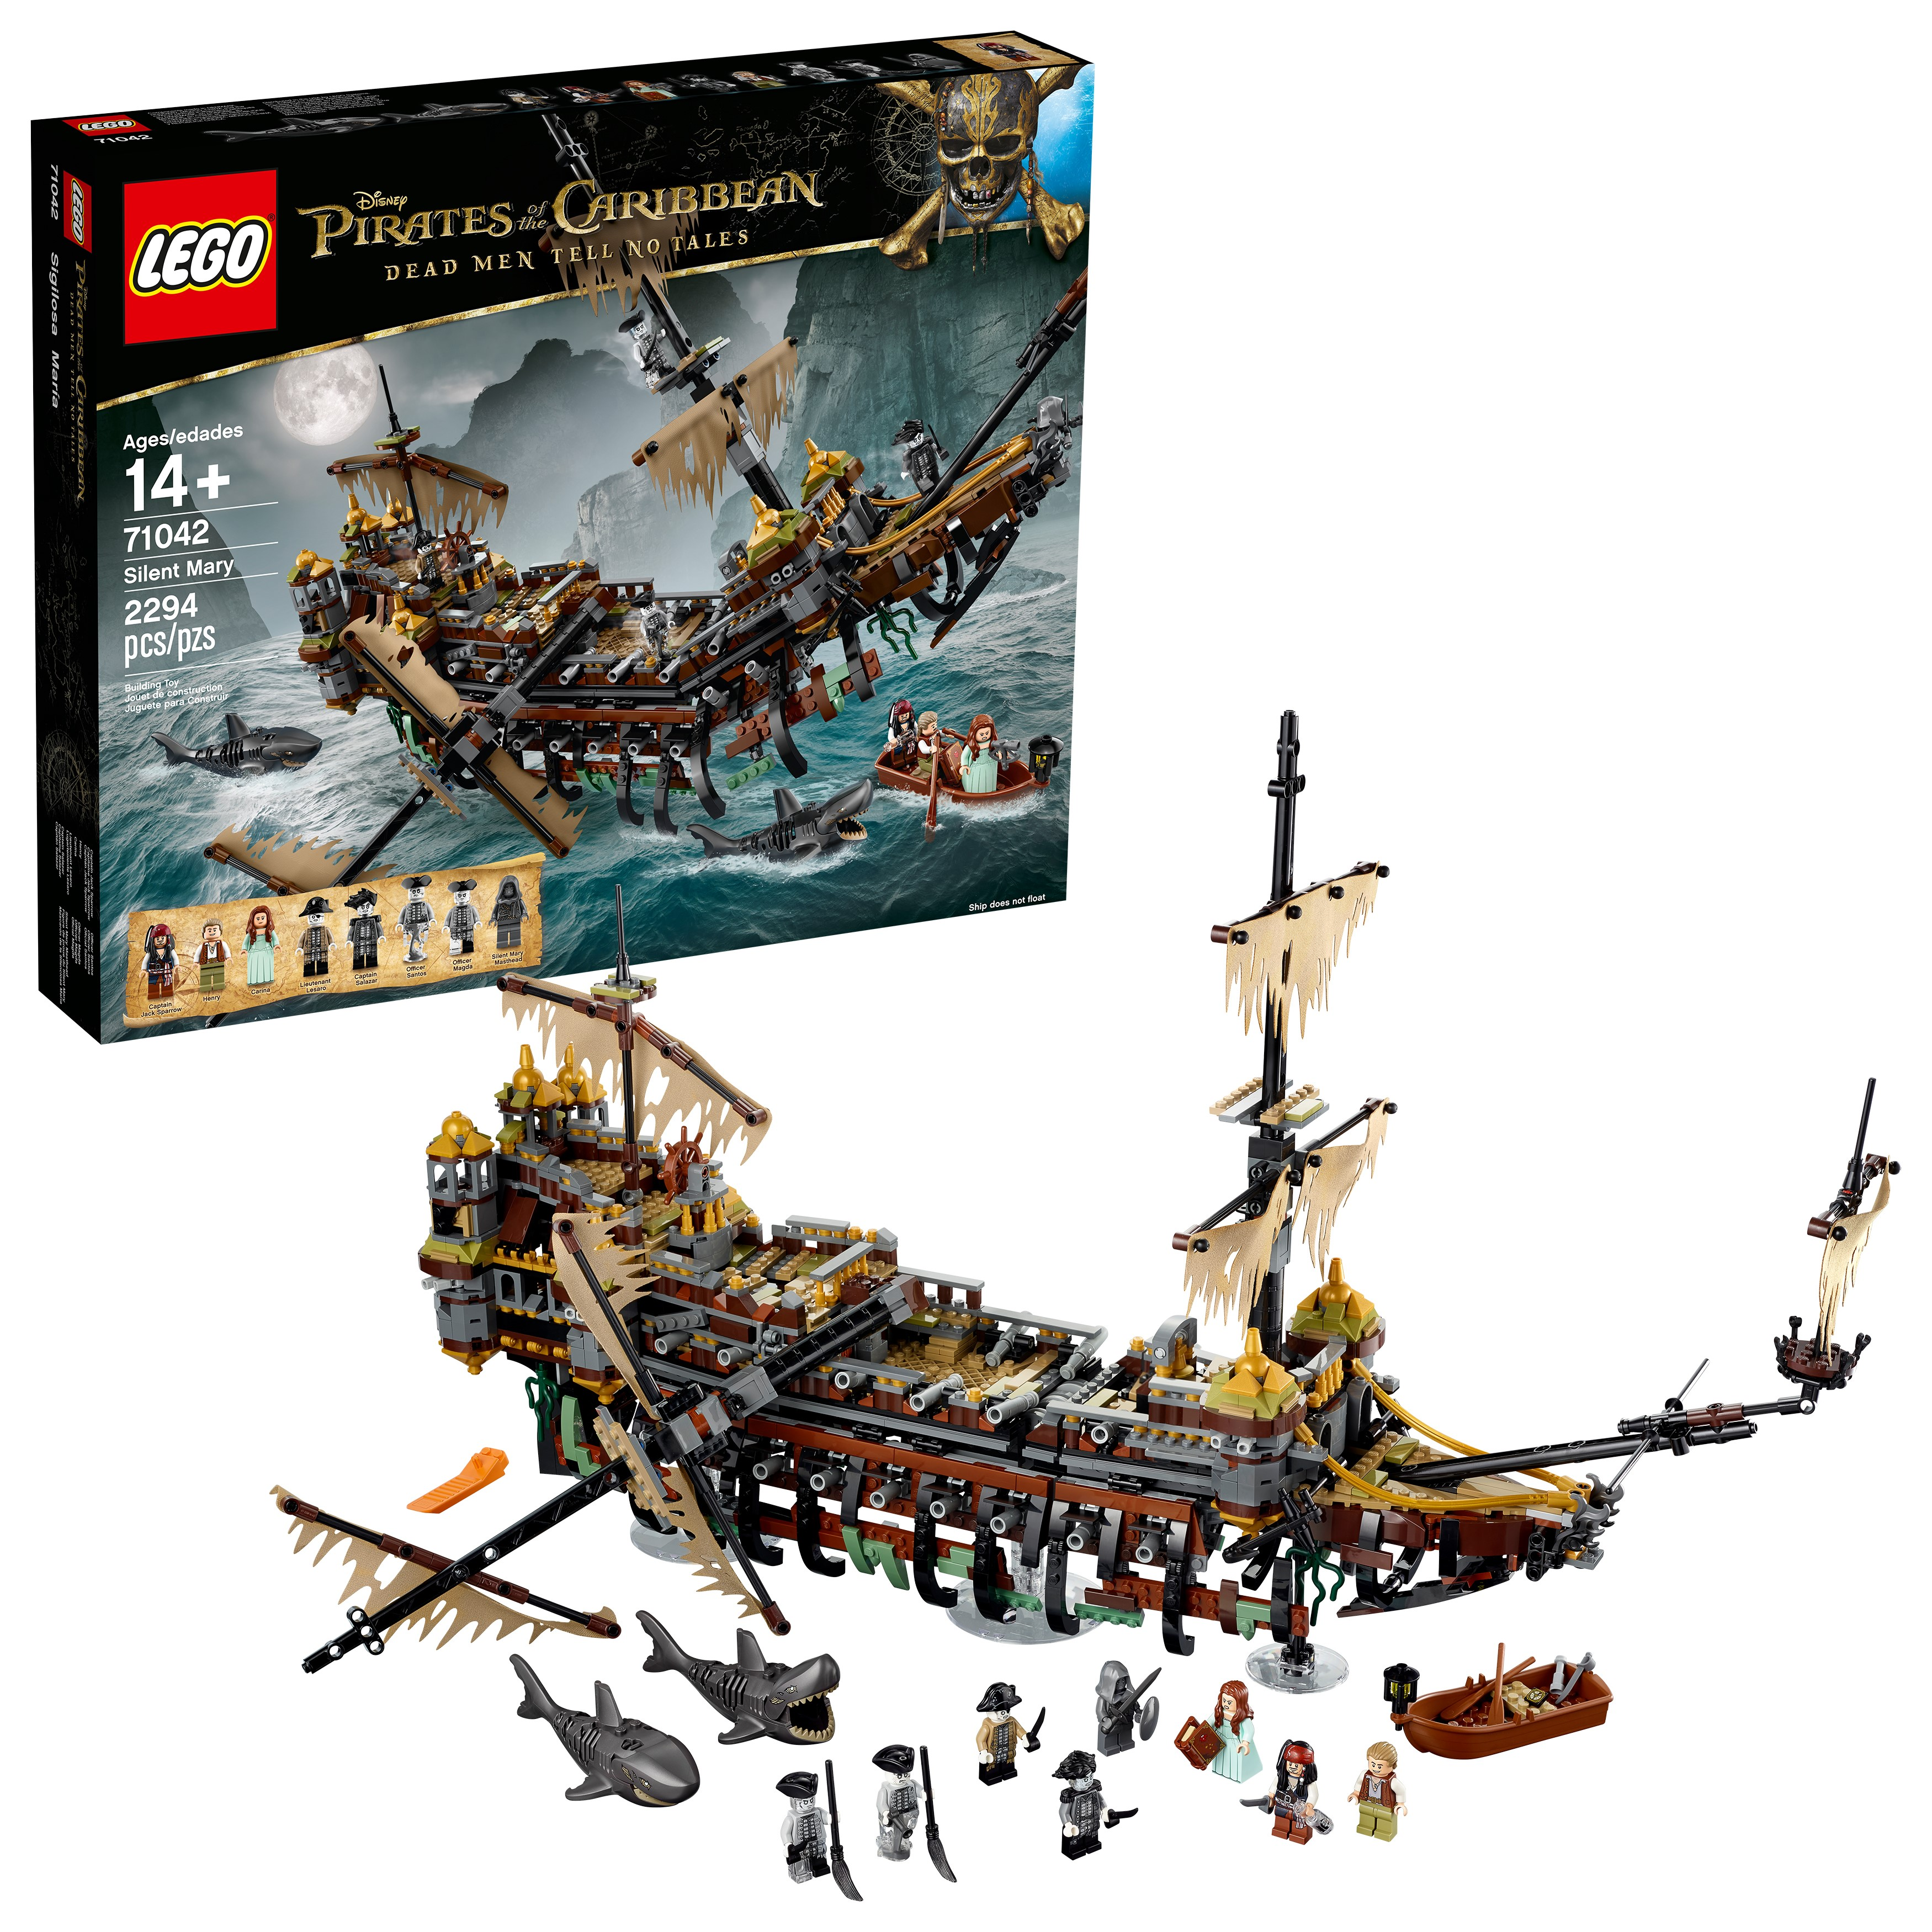 Lego 6174890 Pirates of the Caribbean Silent Mary 71042 Building Kit Ship by LEGO System Inc